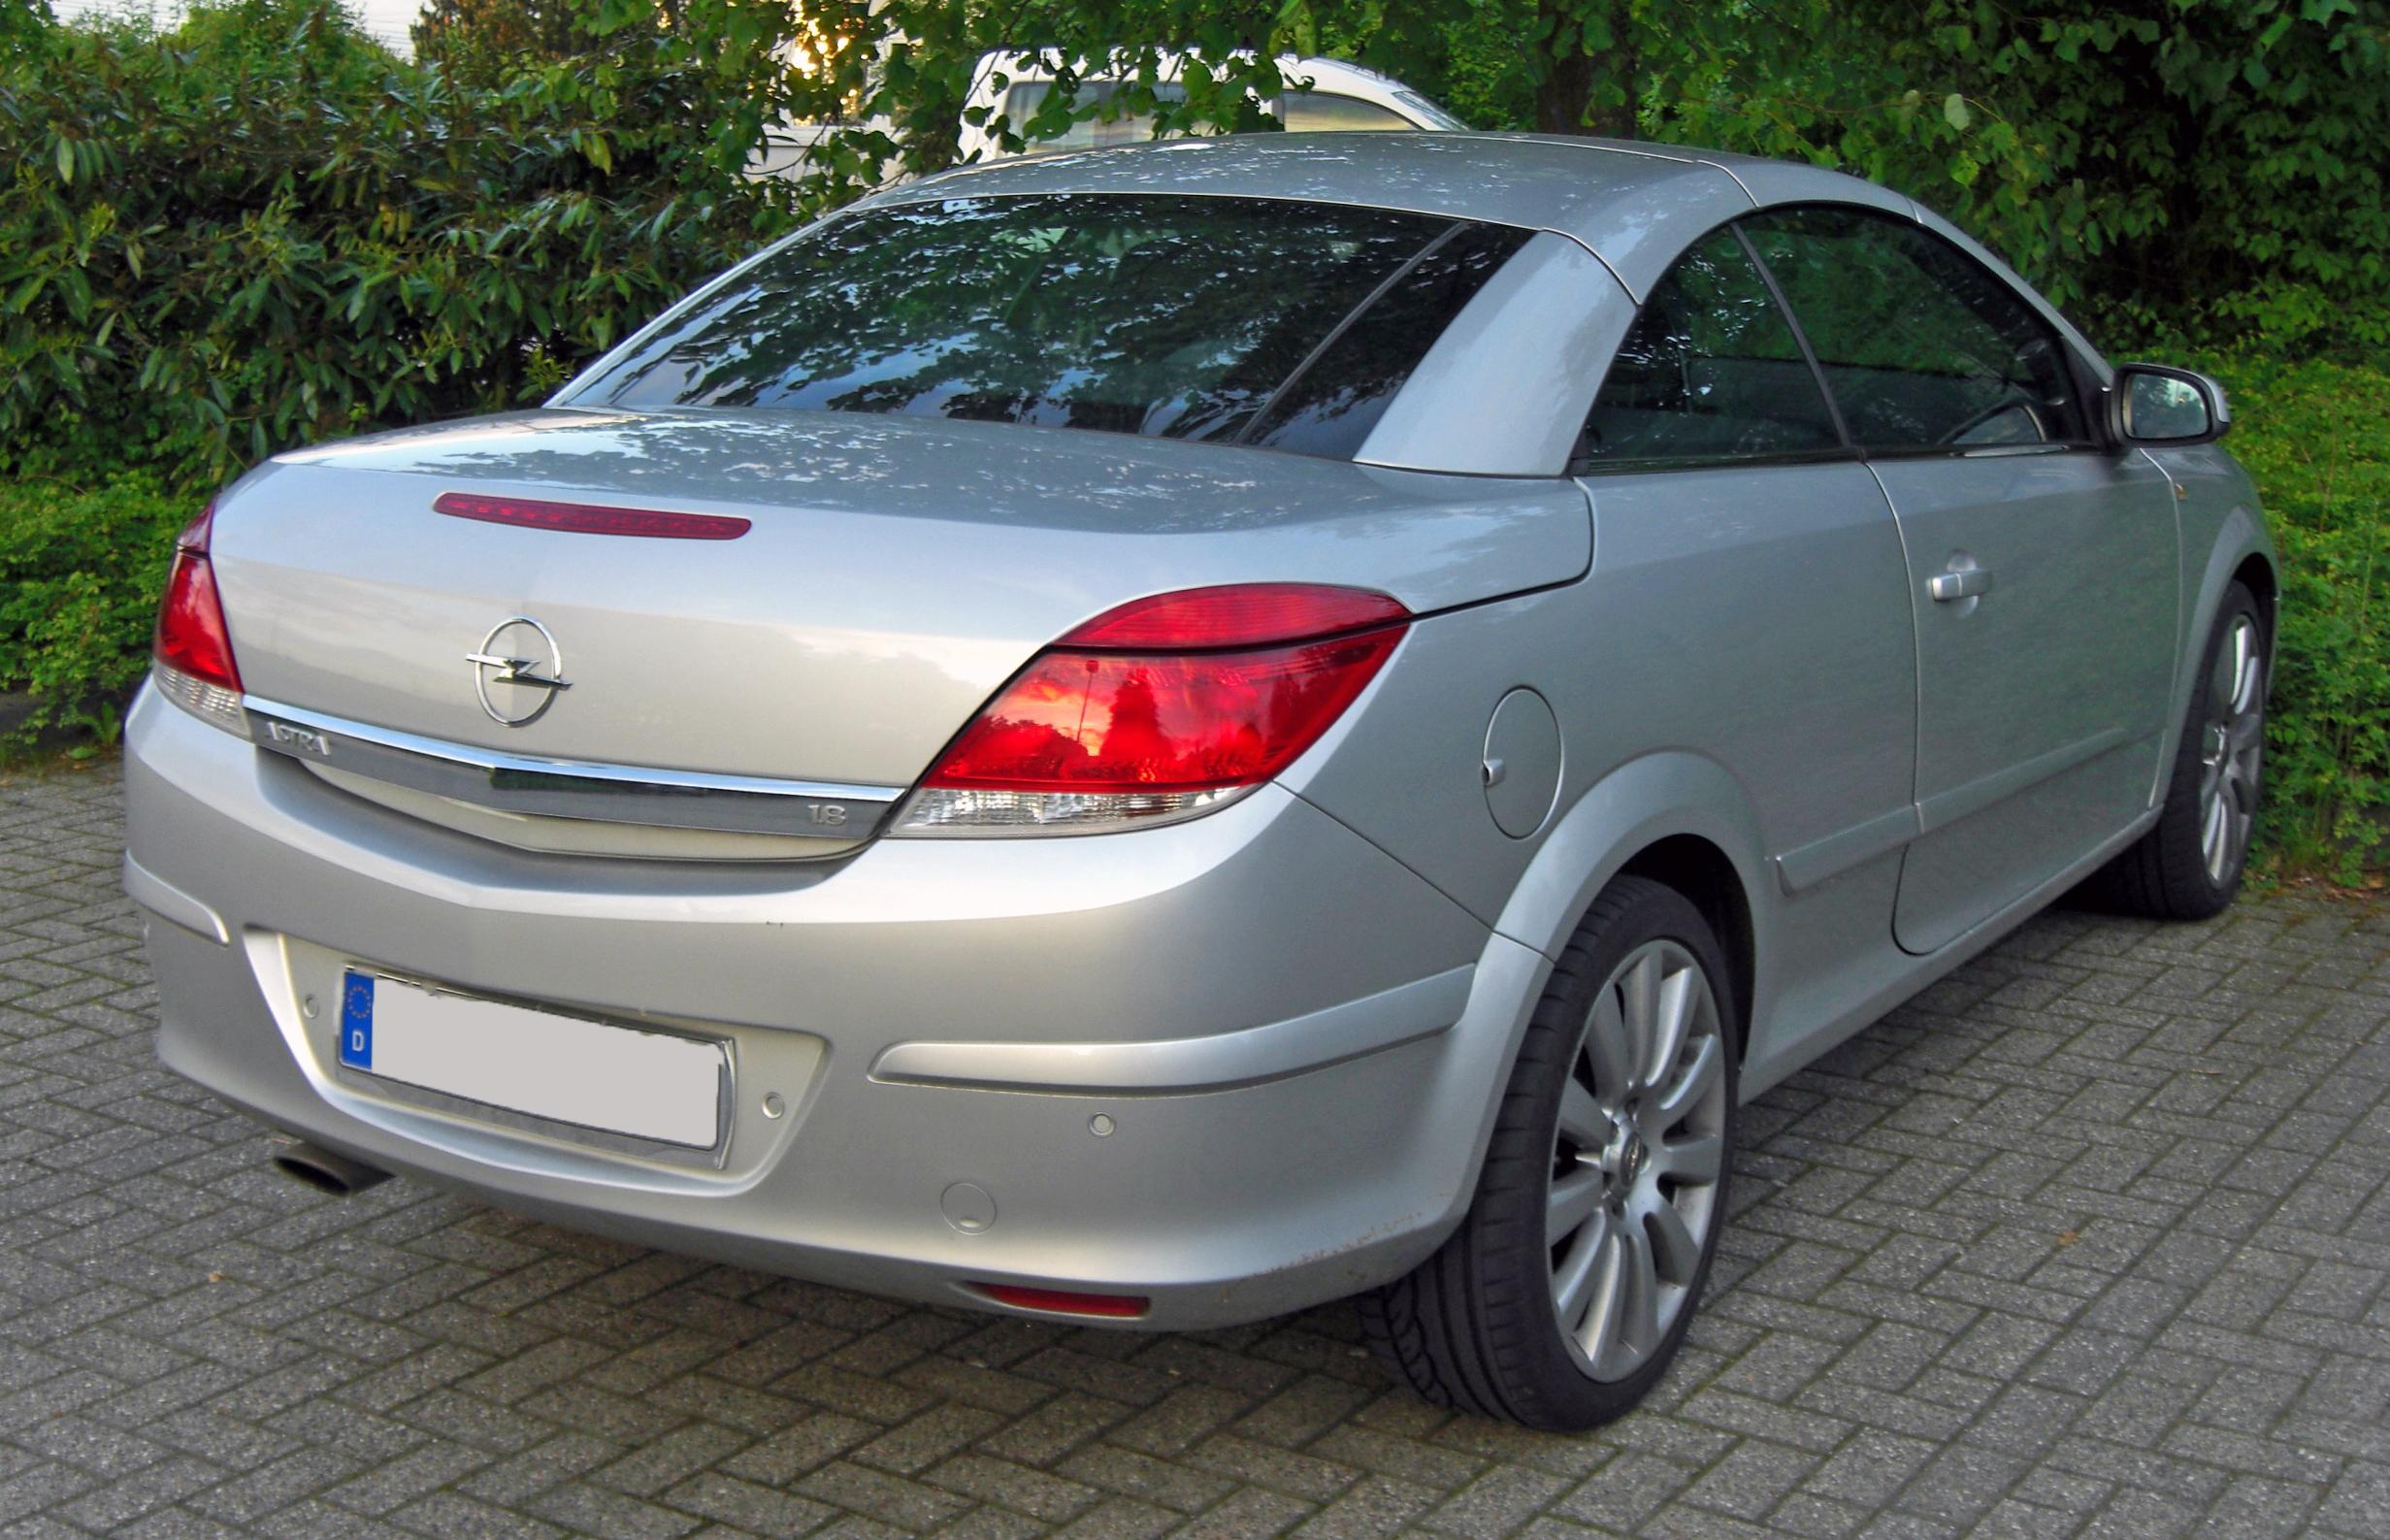 file opel astra h twintop 1 8 facelift 20090518 rear jpg. Black Bedroom Furniture Sets. Home Design Ideas